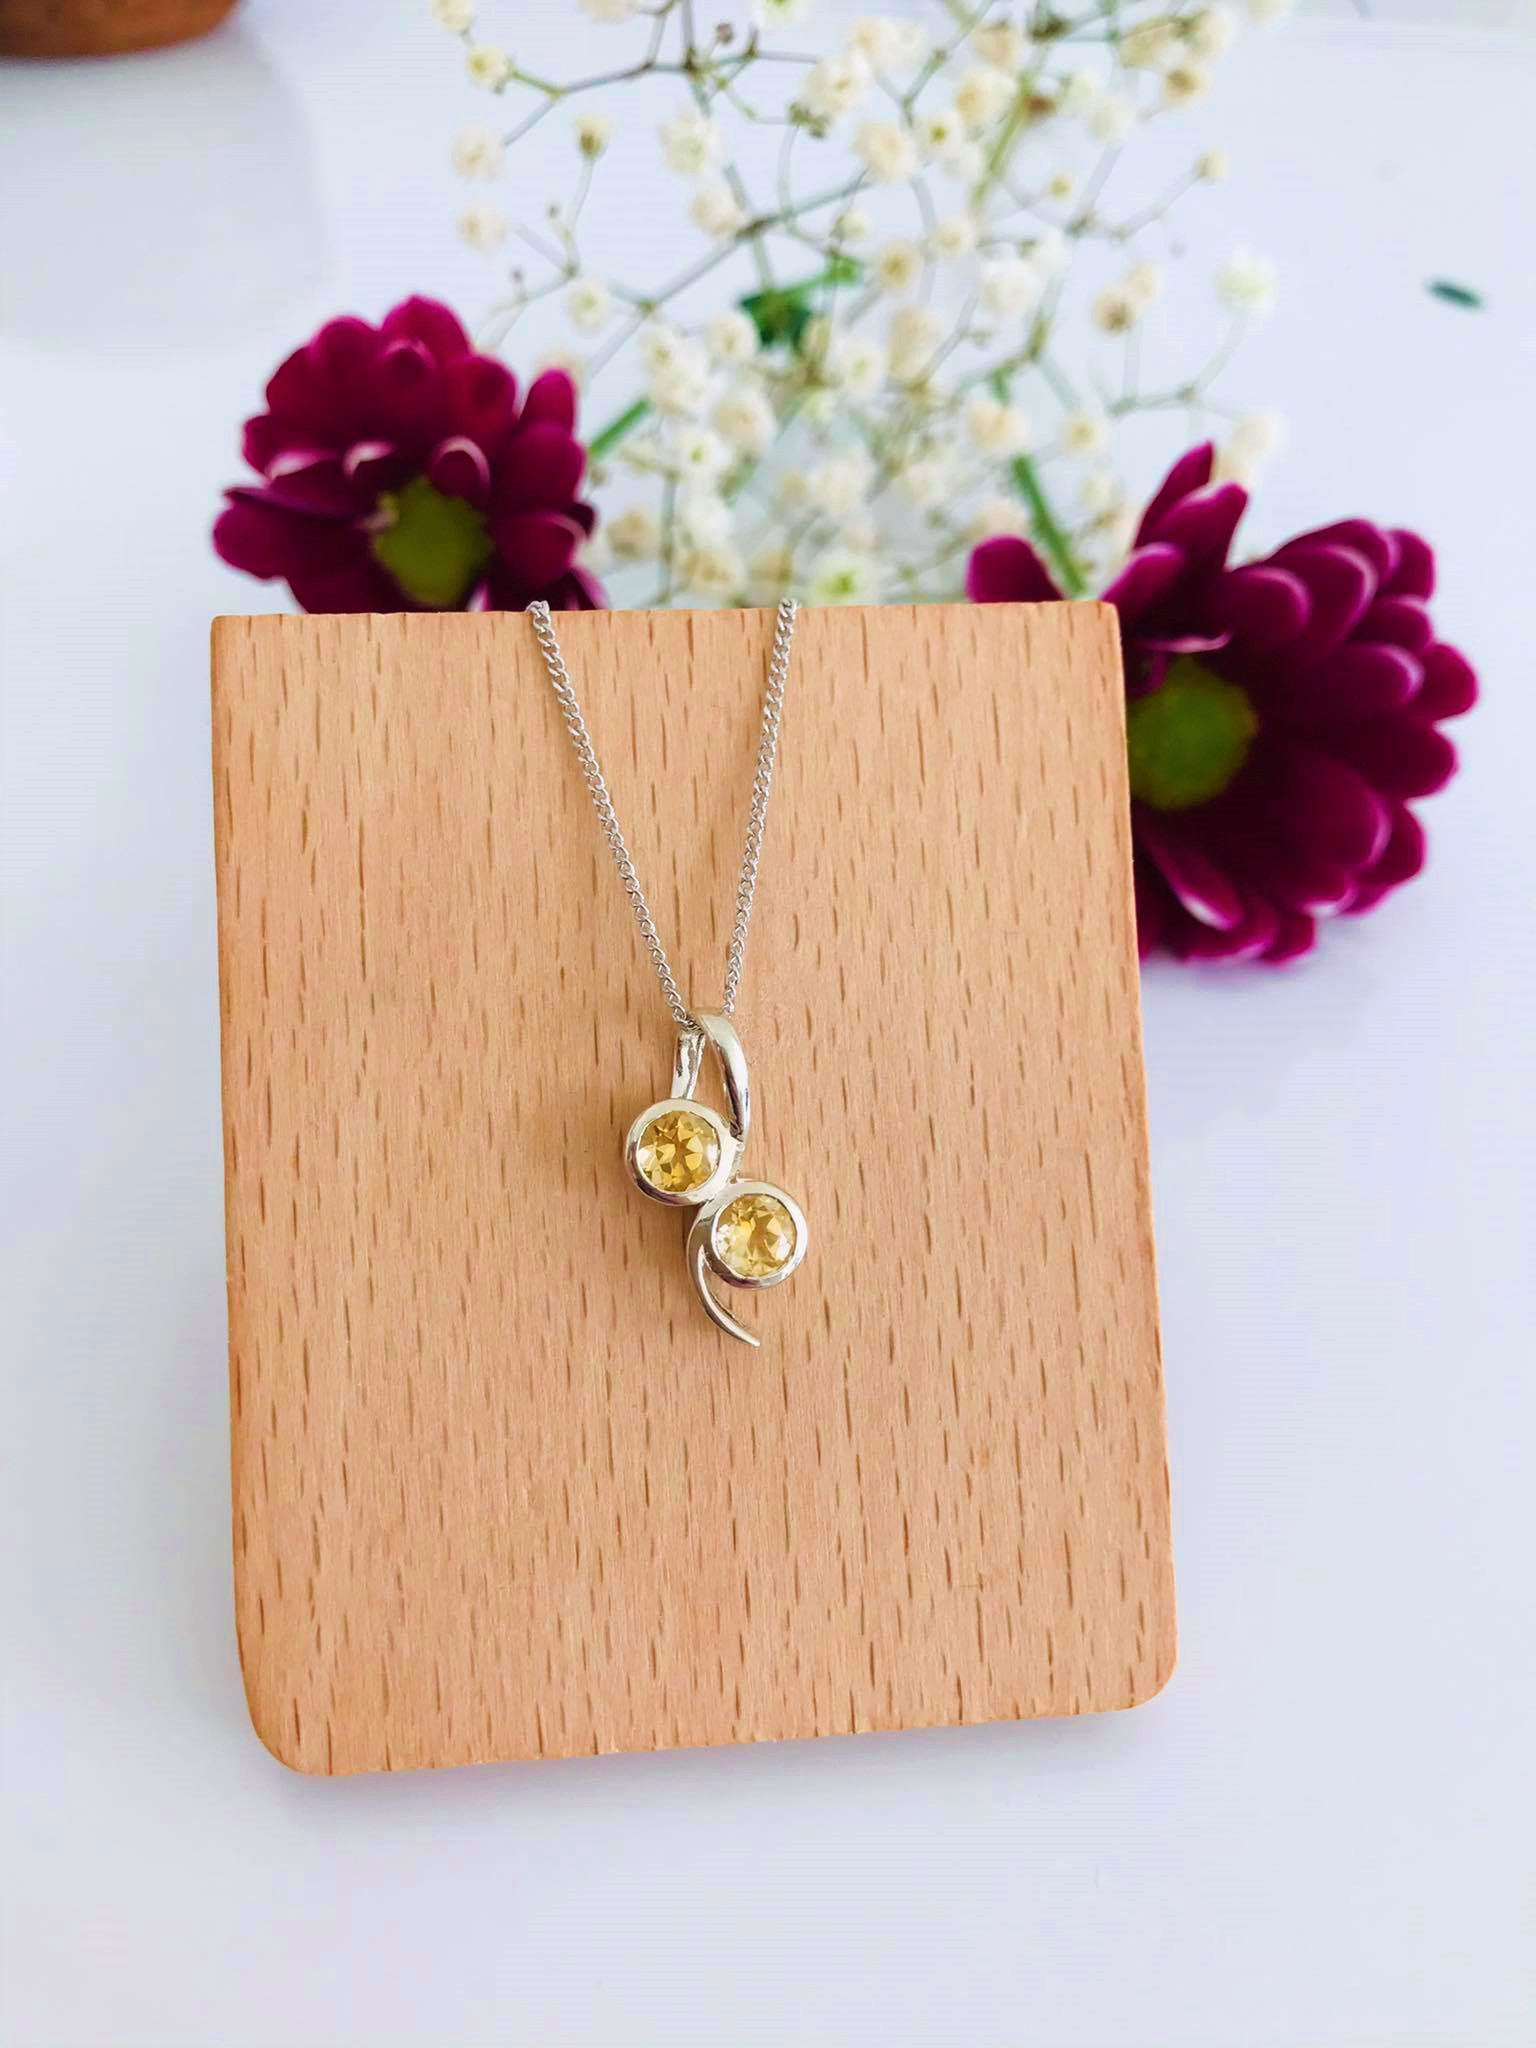 Citrine set in Silver Necklace Image